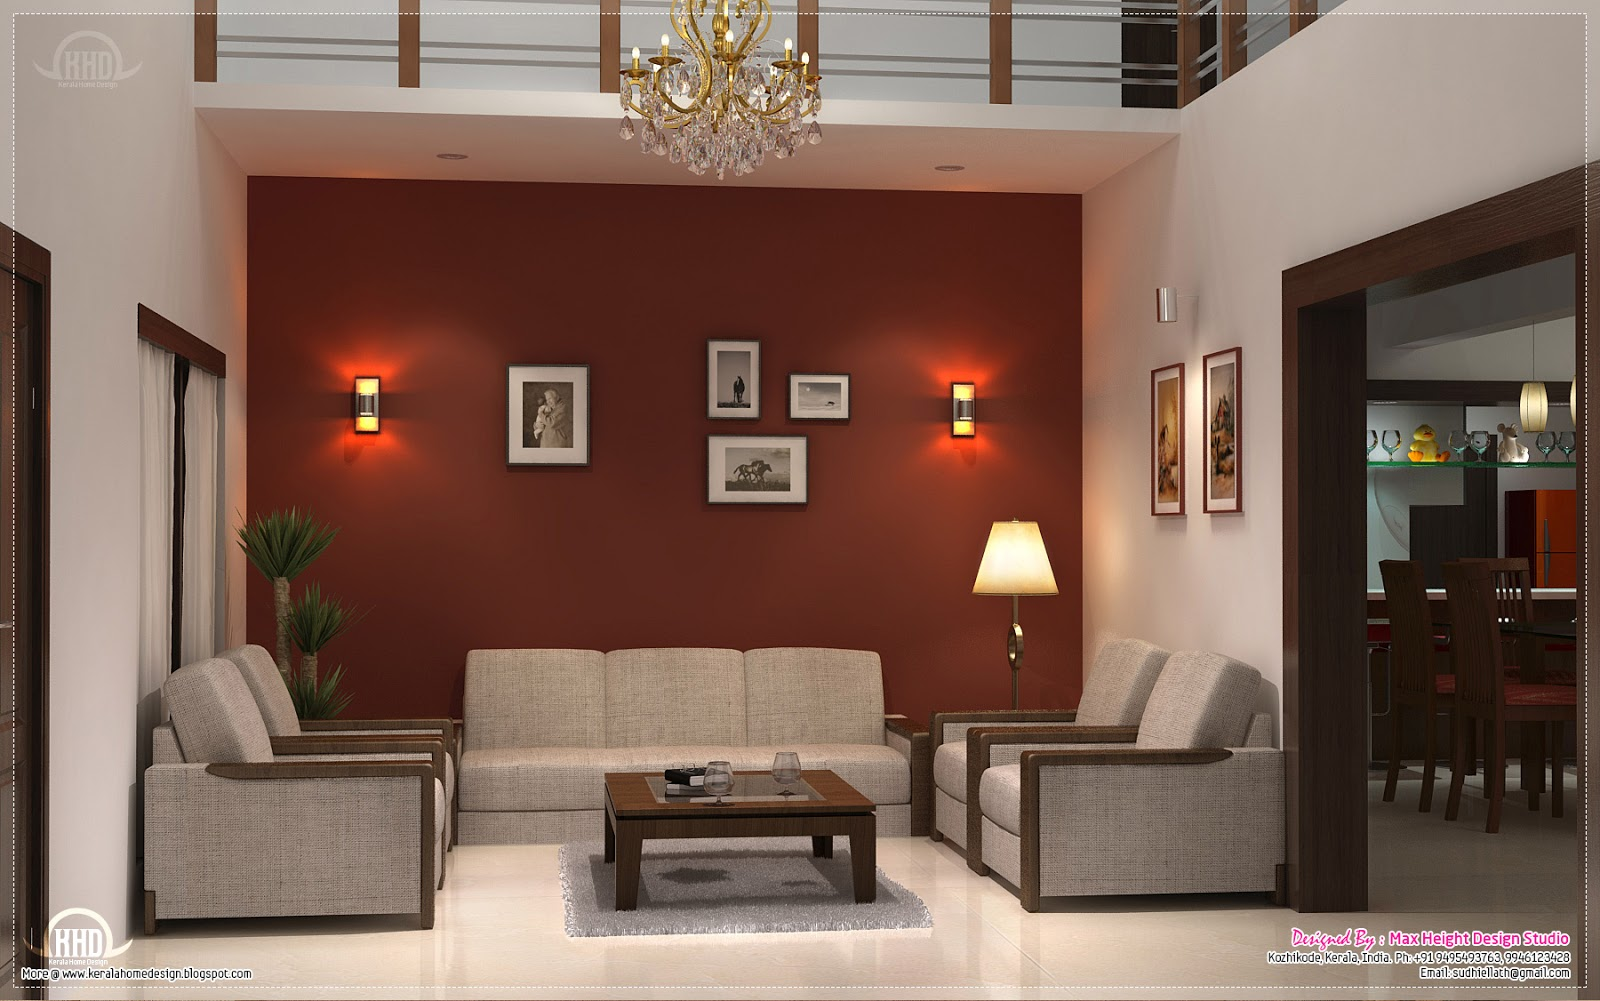 Home interior design ideas kerala home design and floor for Kerala home interior designs photos